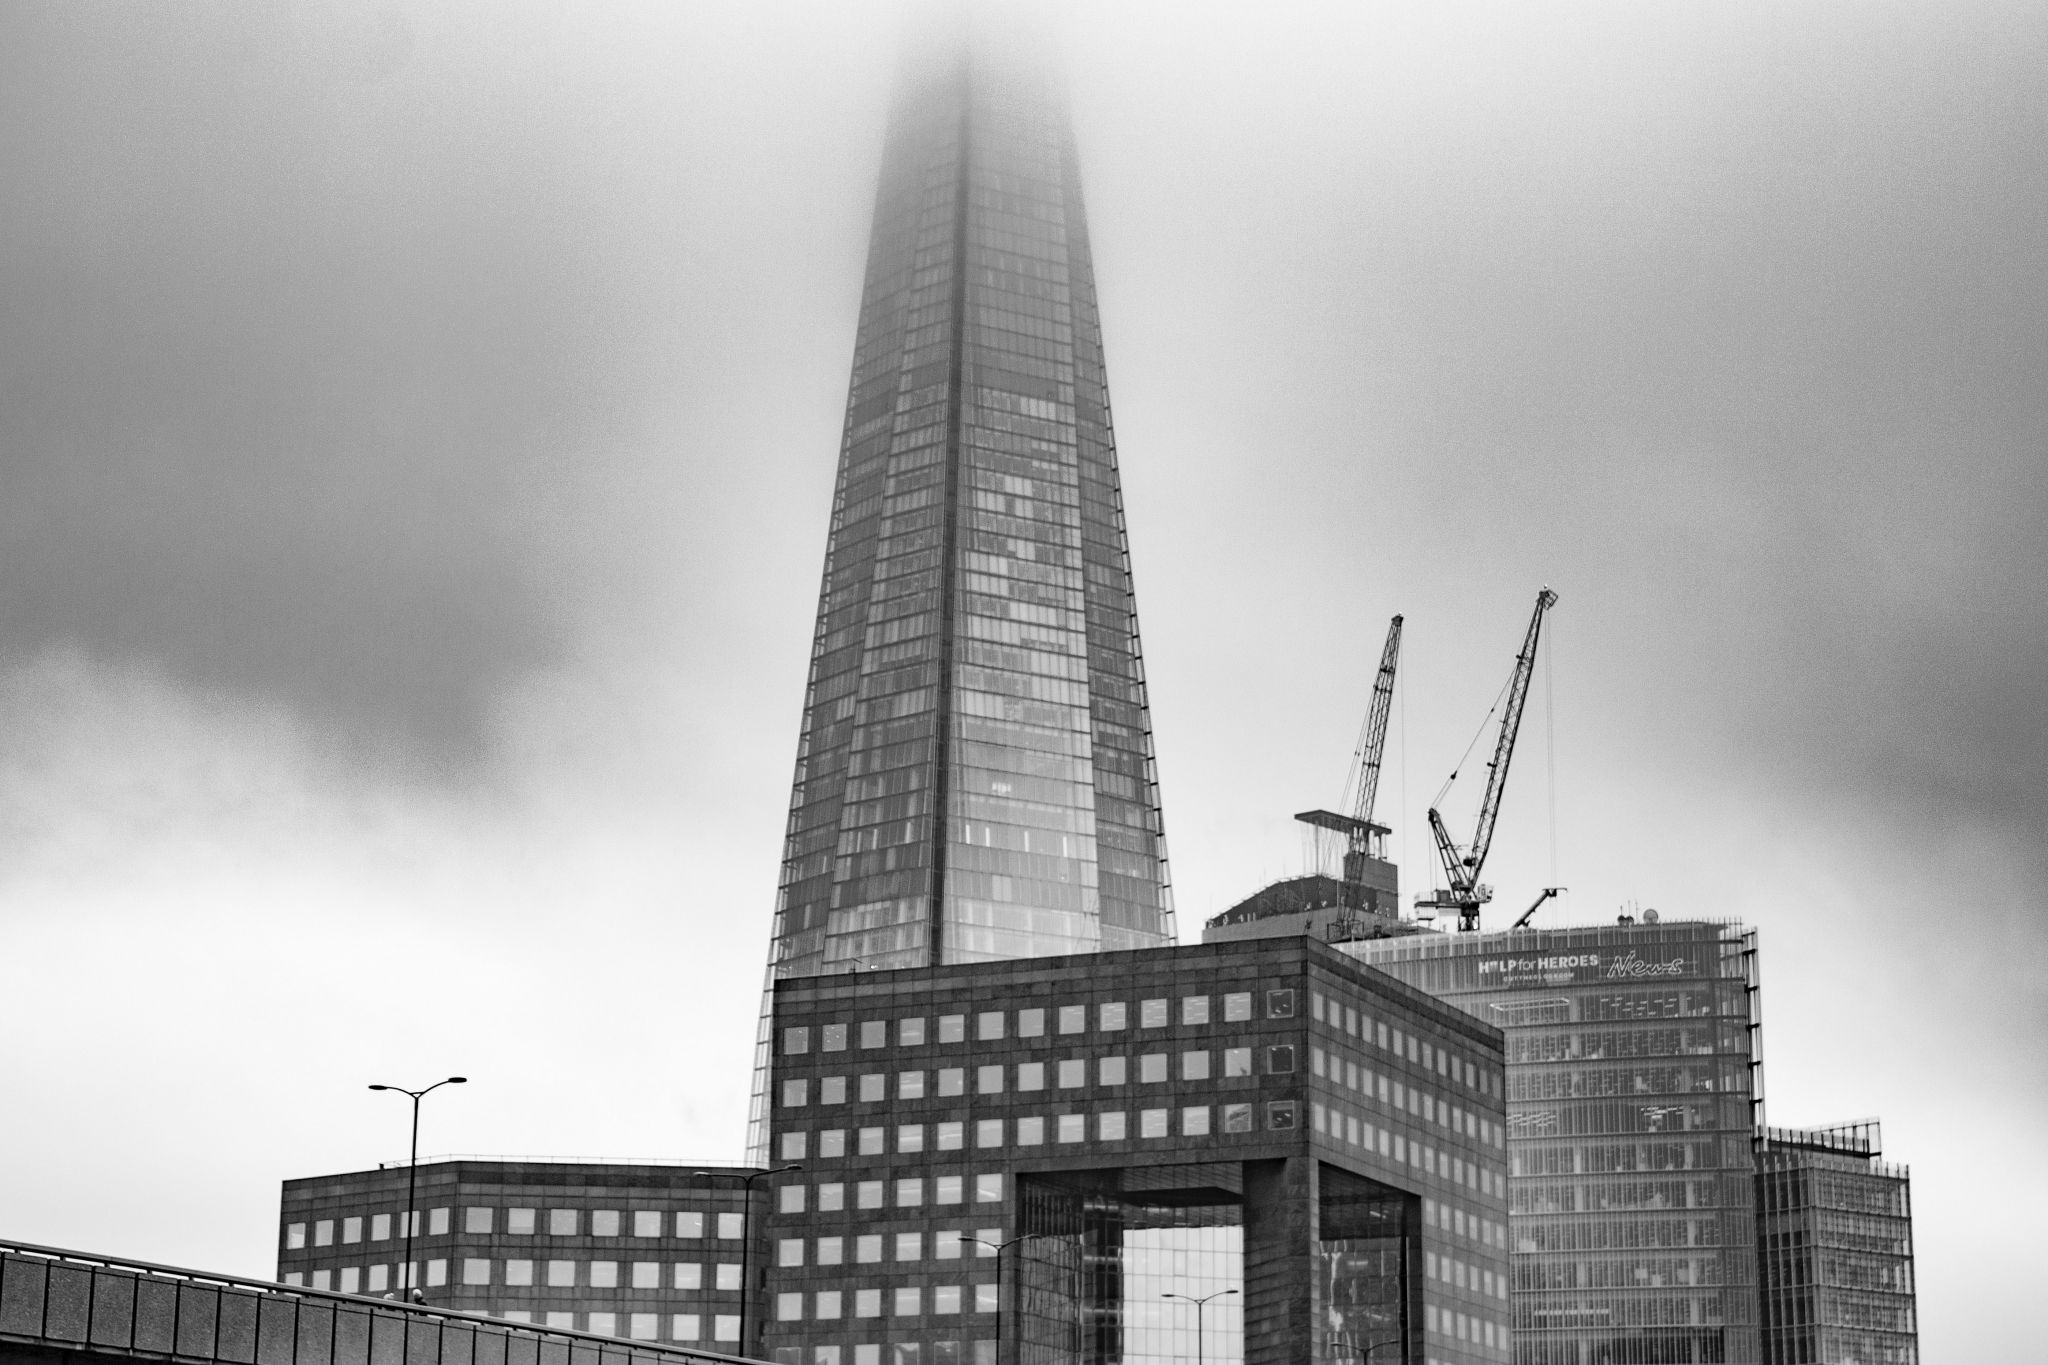 The Shard emerges from the mist